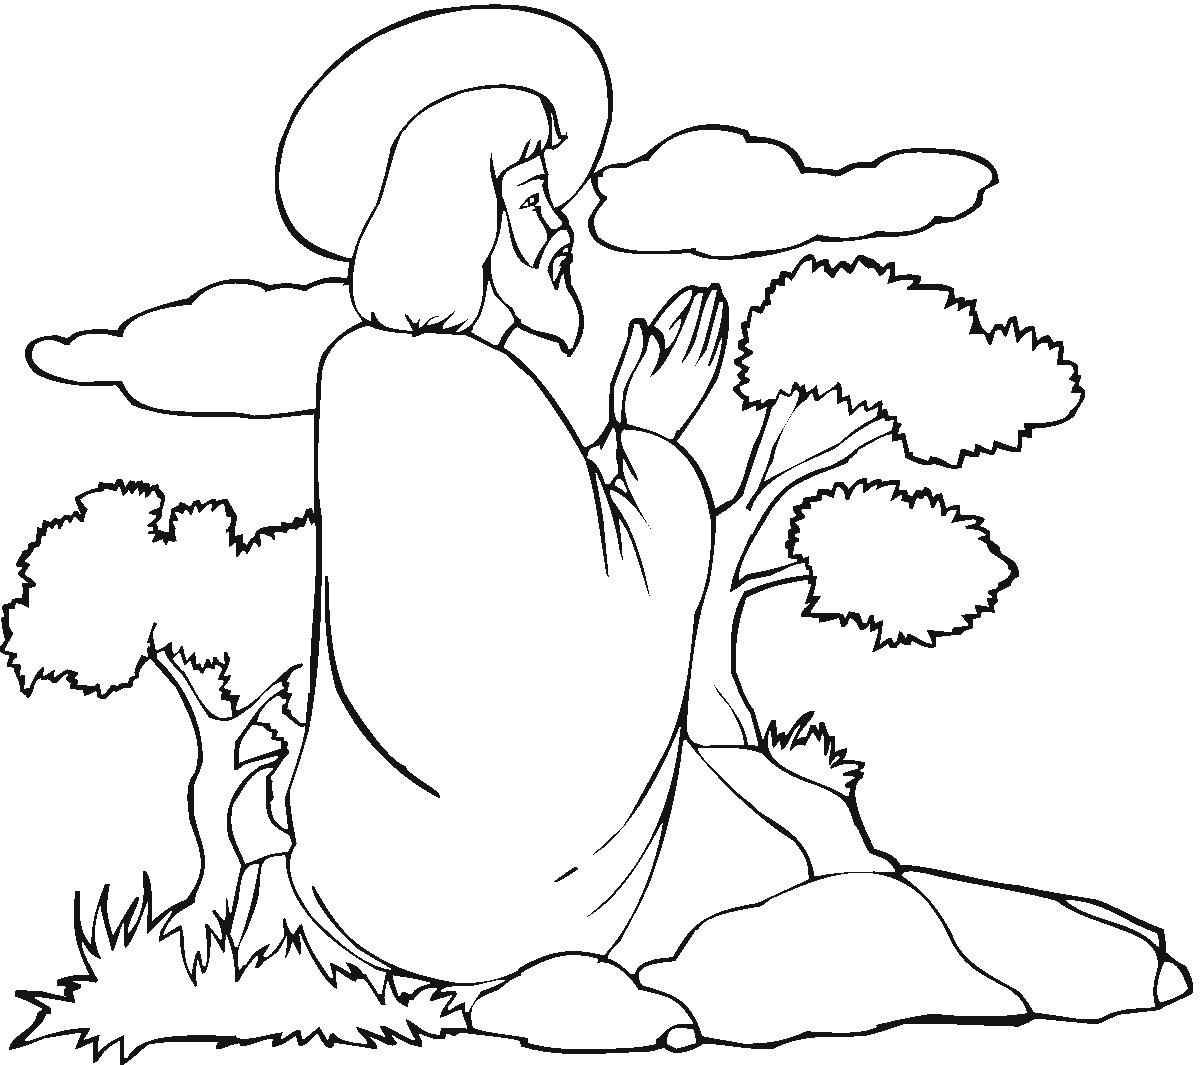 Free The Lord S Prayer Coloring Pages For Children, Download Free ... | 1065x1200